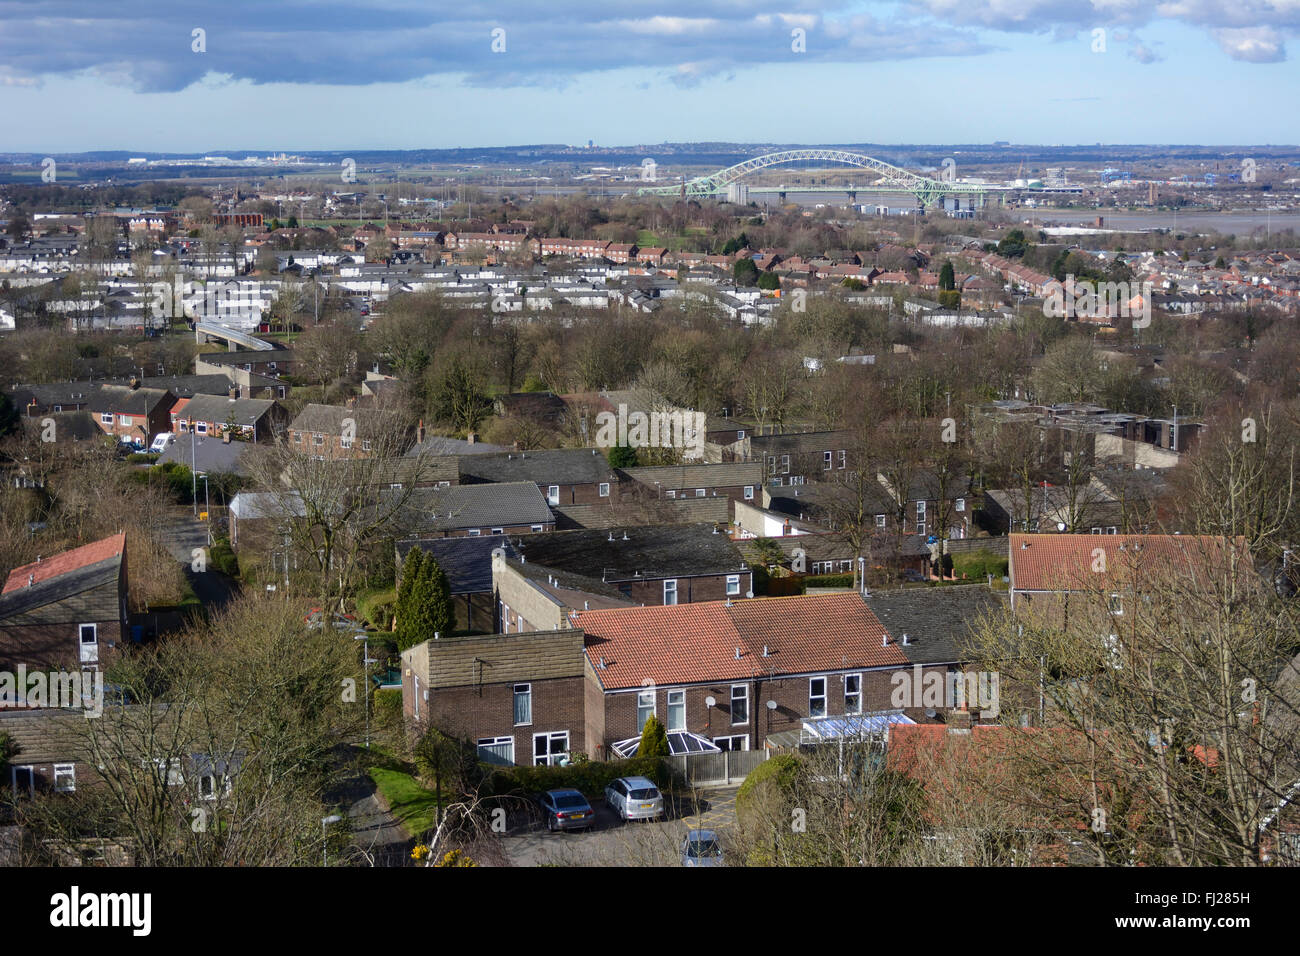 The town of Runcorn on the bank of the River Mersey and opposite the town of Widnes. The Runcorn -Widnes bridge - Stock Image